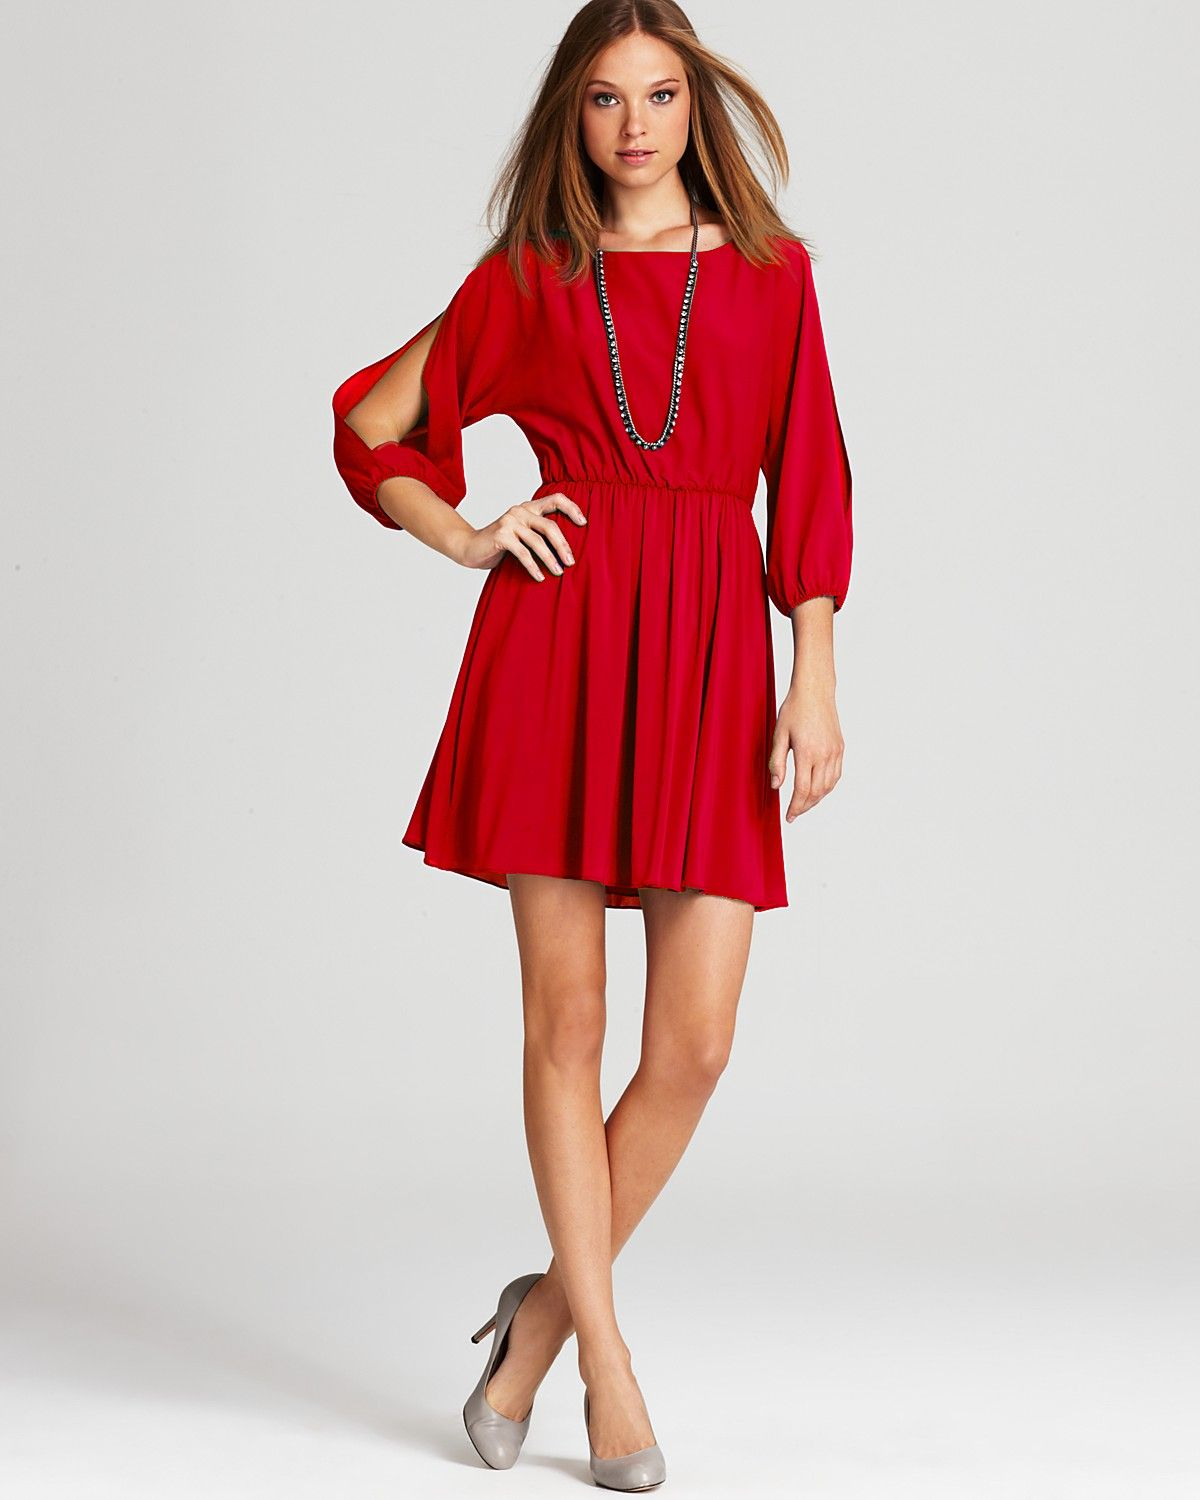 Alice Olivia Dress Lass Cold Shoulder Balloon Sleeve Mini Women Contemporary Bloomingdale S Designer Outfits Woman Dresses Red Silk Dress [ 1500 x 1200 Pixel ]